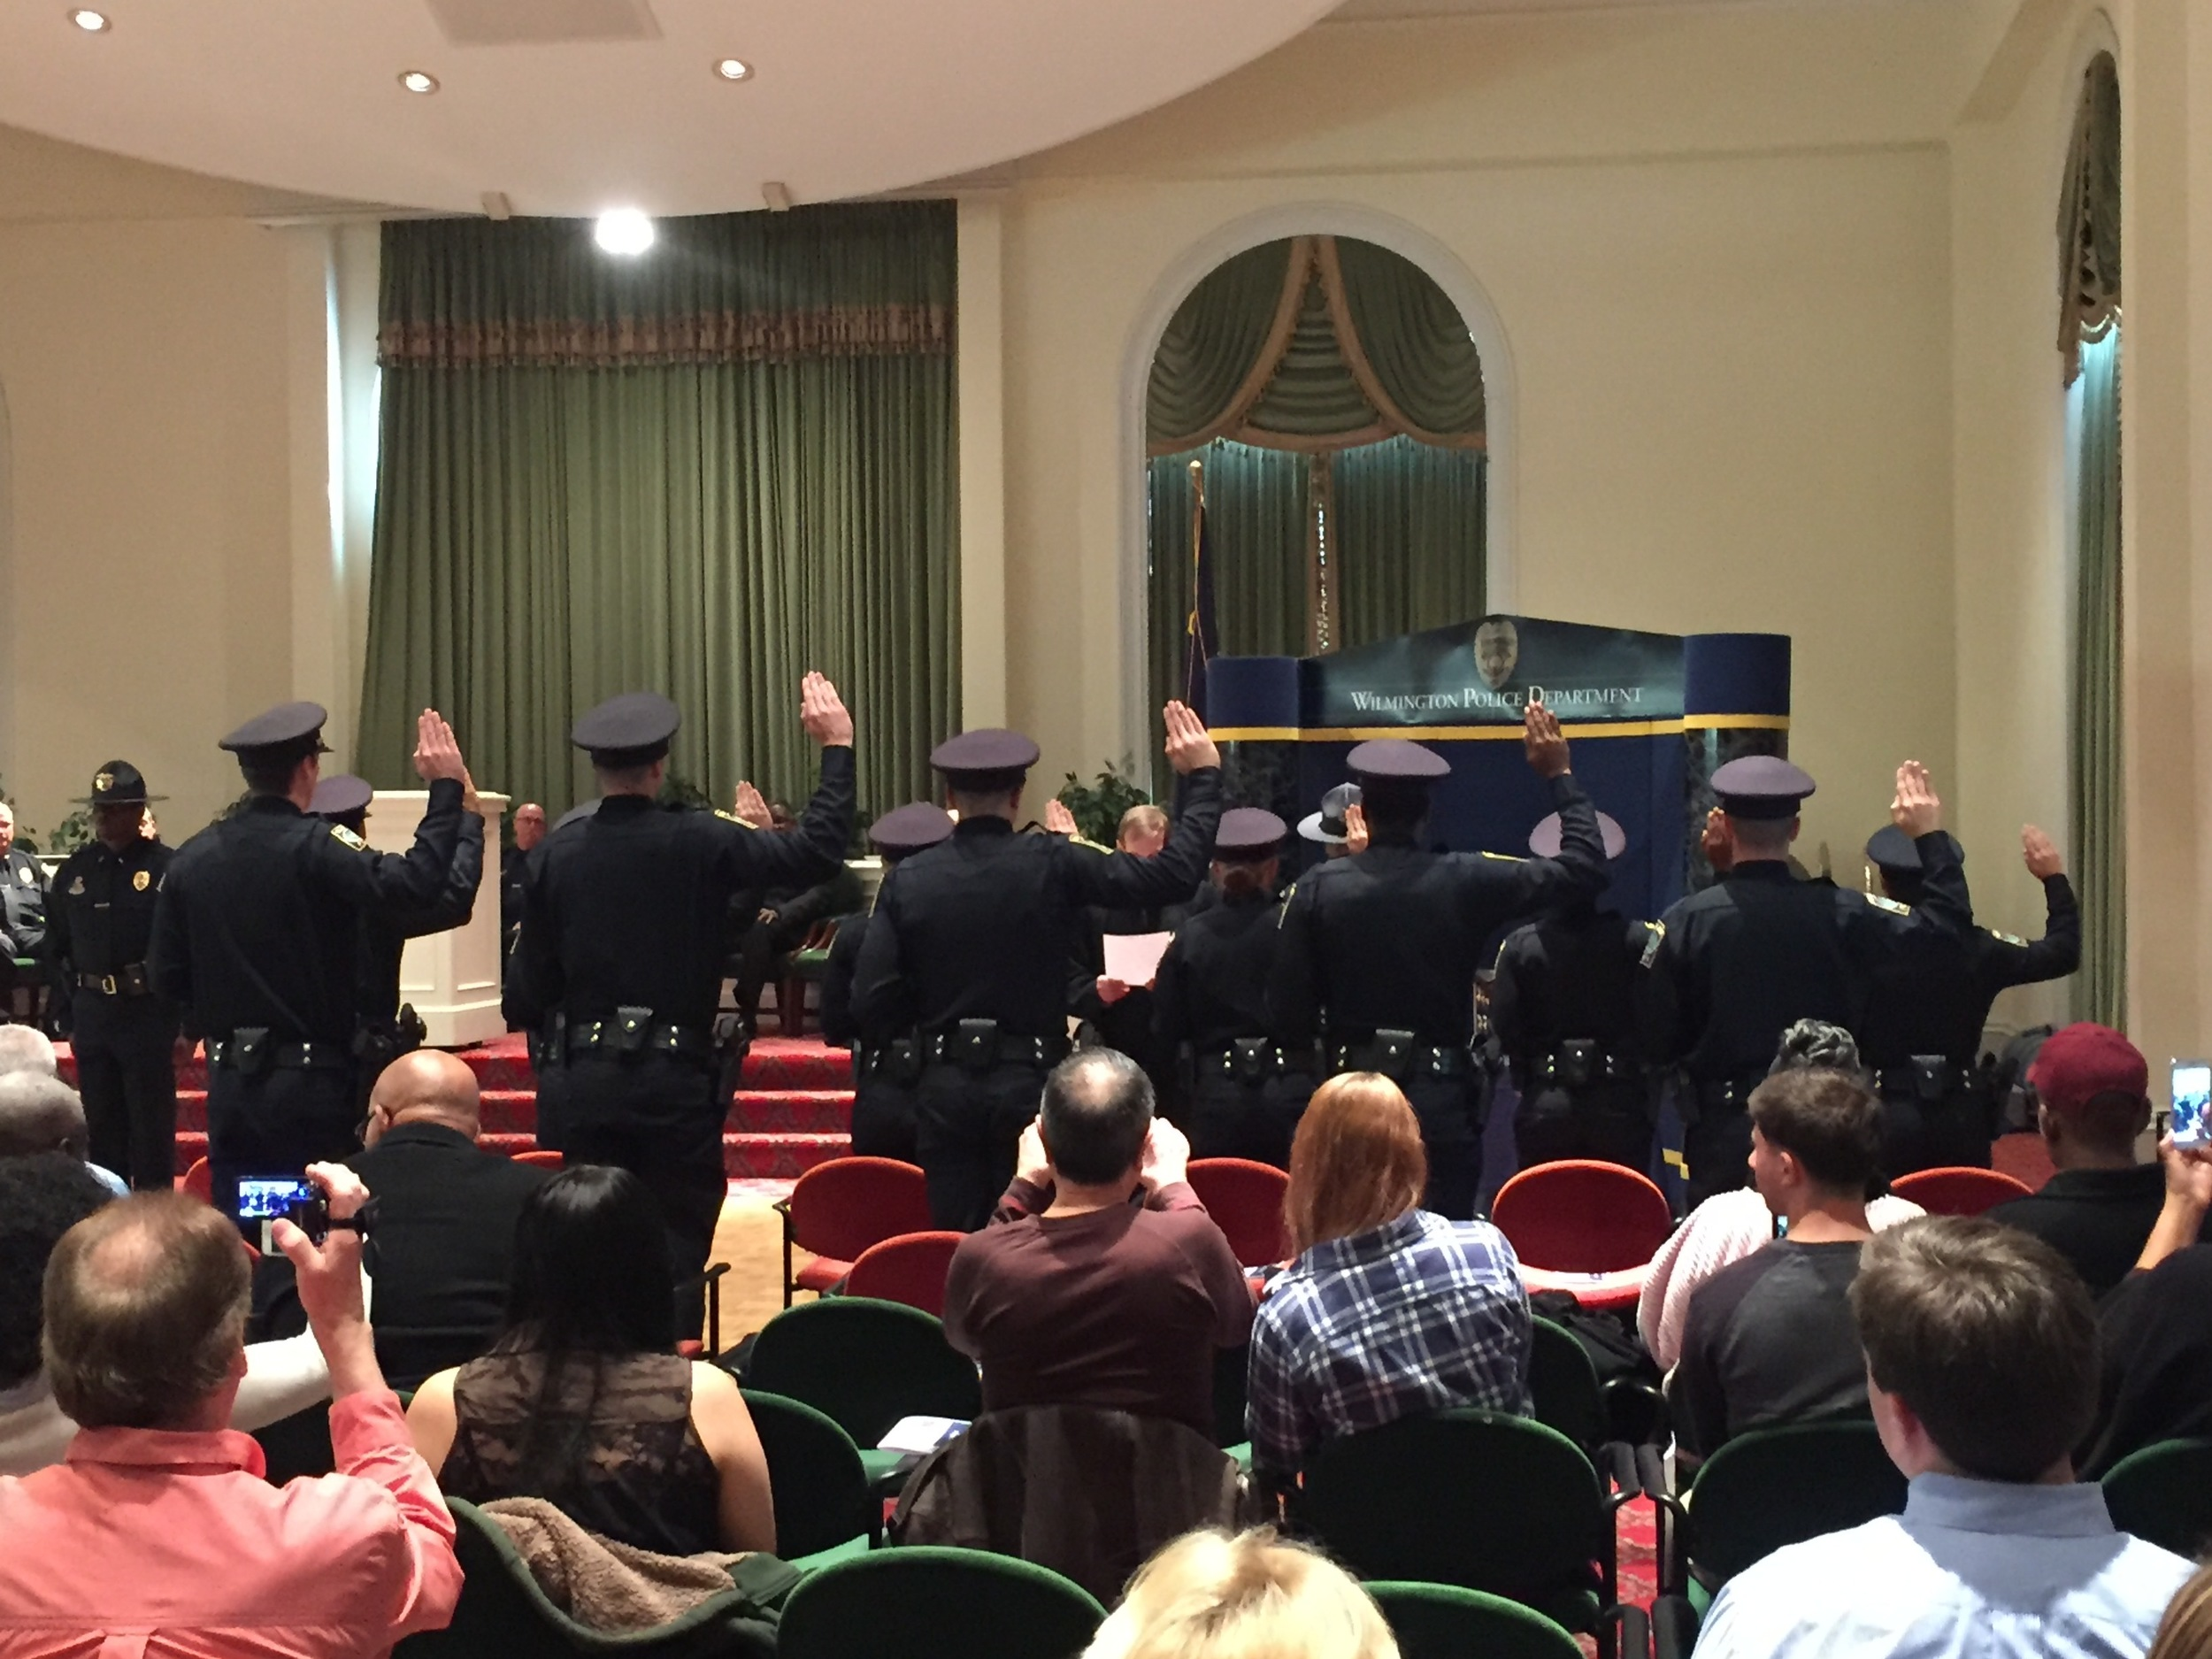 Administering oath of office to new police officers, Wilmington, March 4, 2016.